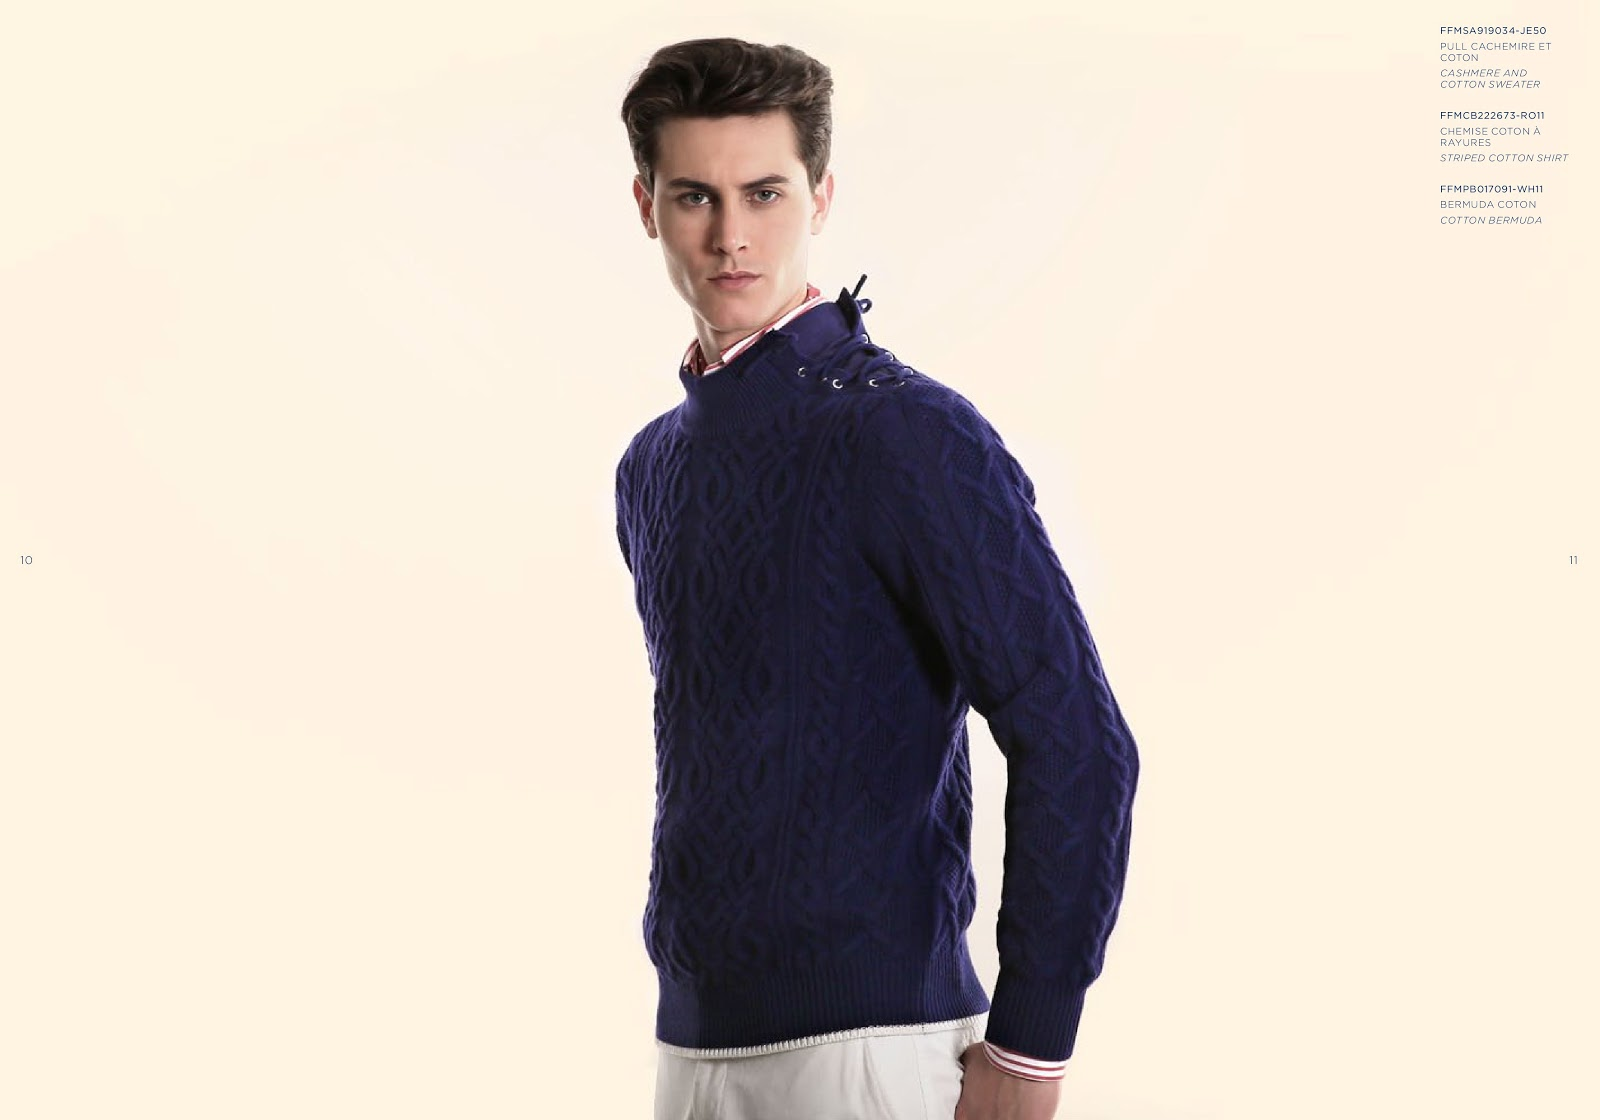 bd97df04d48d2 ... to dress up or down with a clever mash of the toned-down pristine and  the dressed-up refined. Enter the Façonnable Mens Cruise Collection for 2014 .